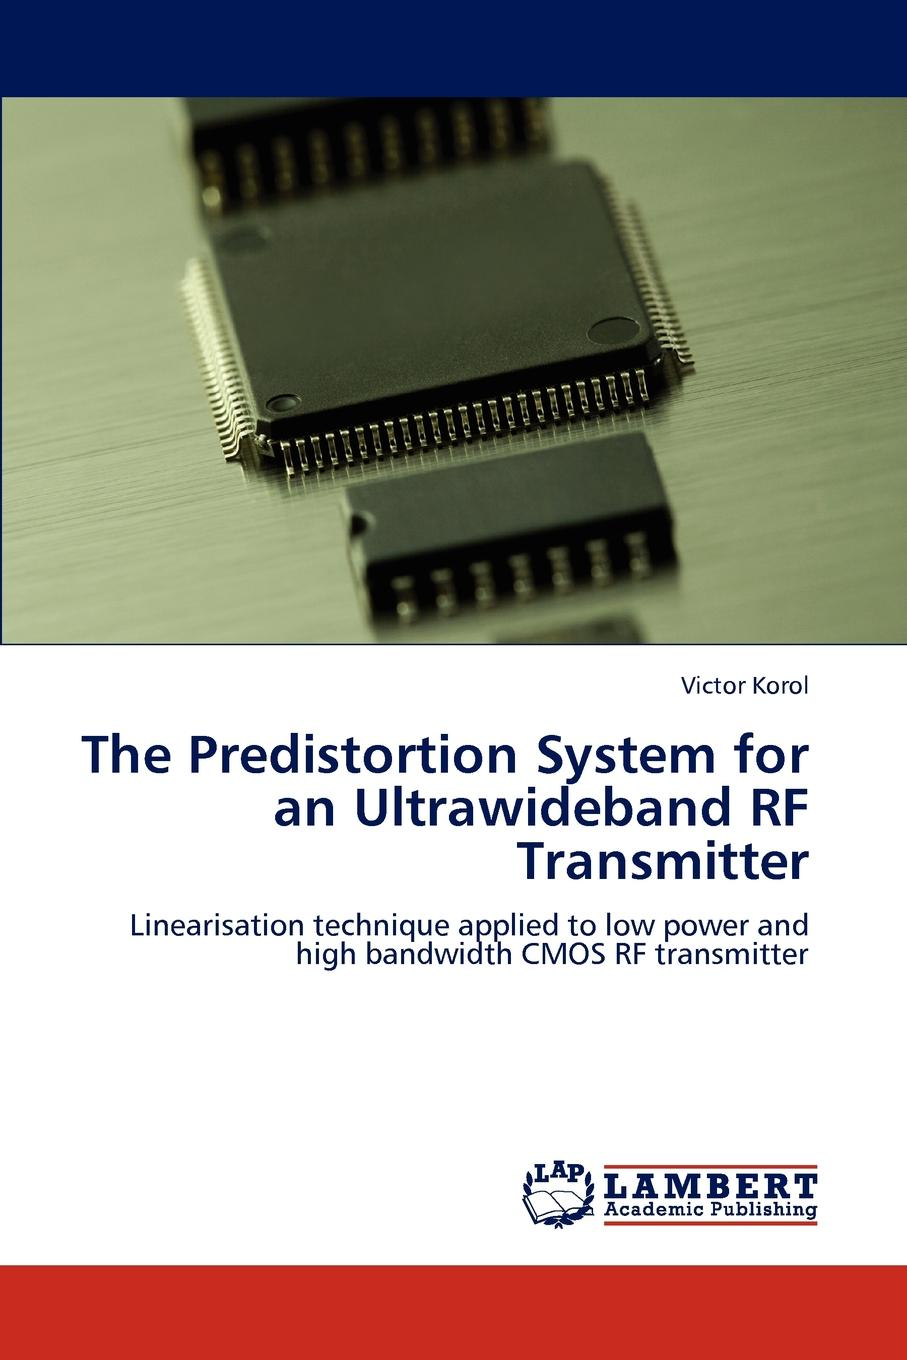 Victor Korol The Predistortion System for an Ultrawideband RF Transmitter цена и фото